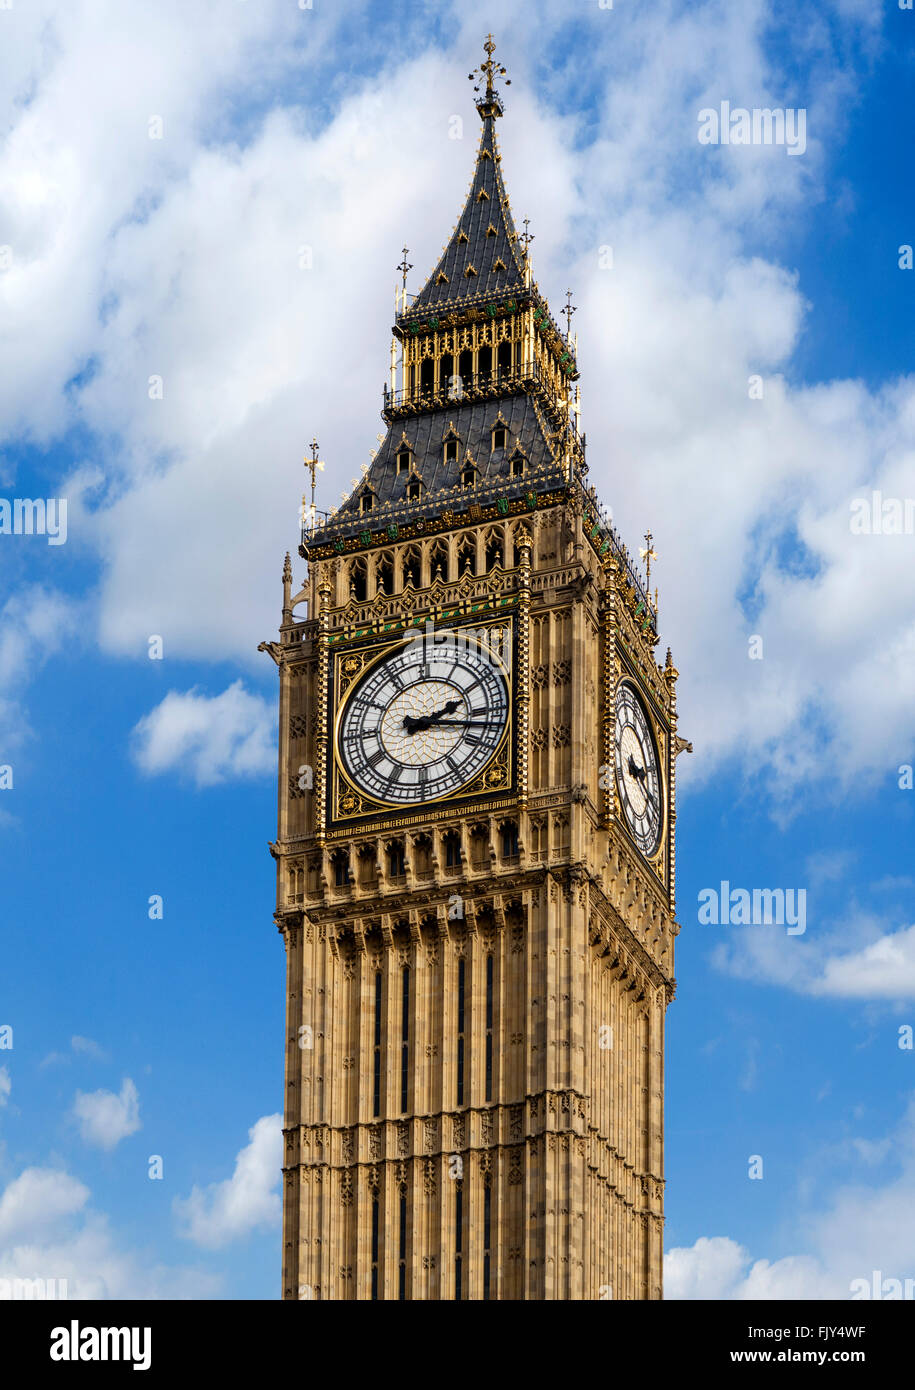 Big Ben at the Palace of Westminster, London, England, UK - Stock Image